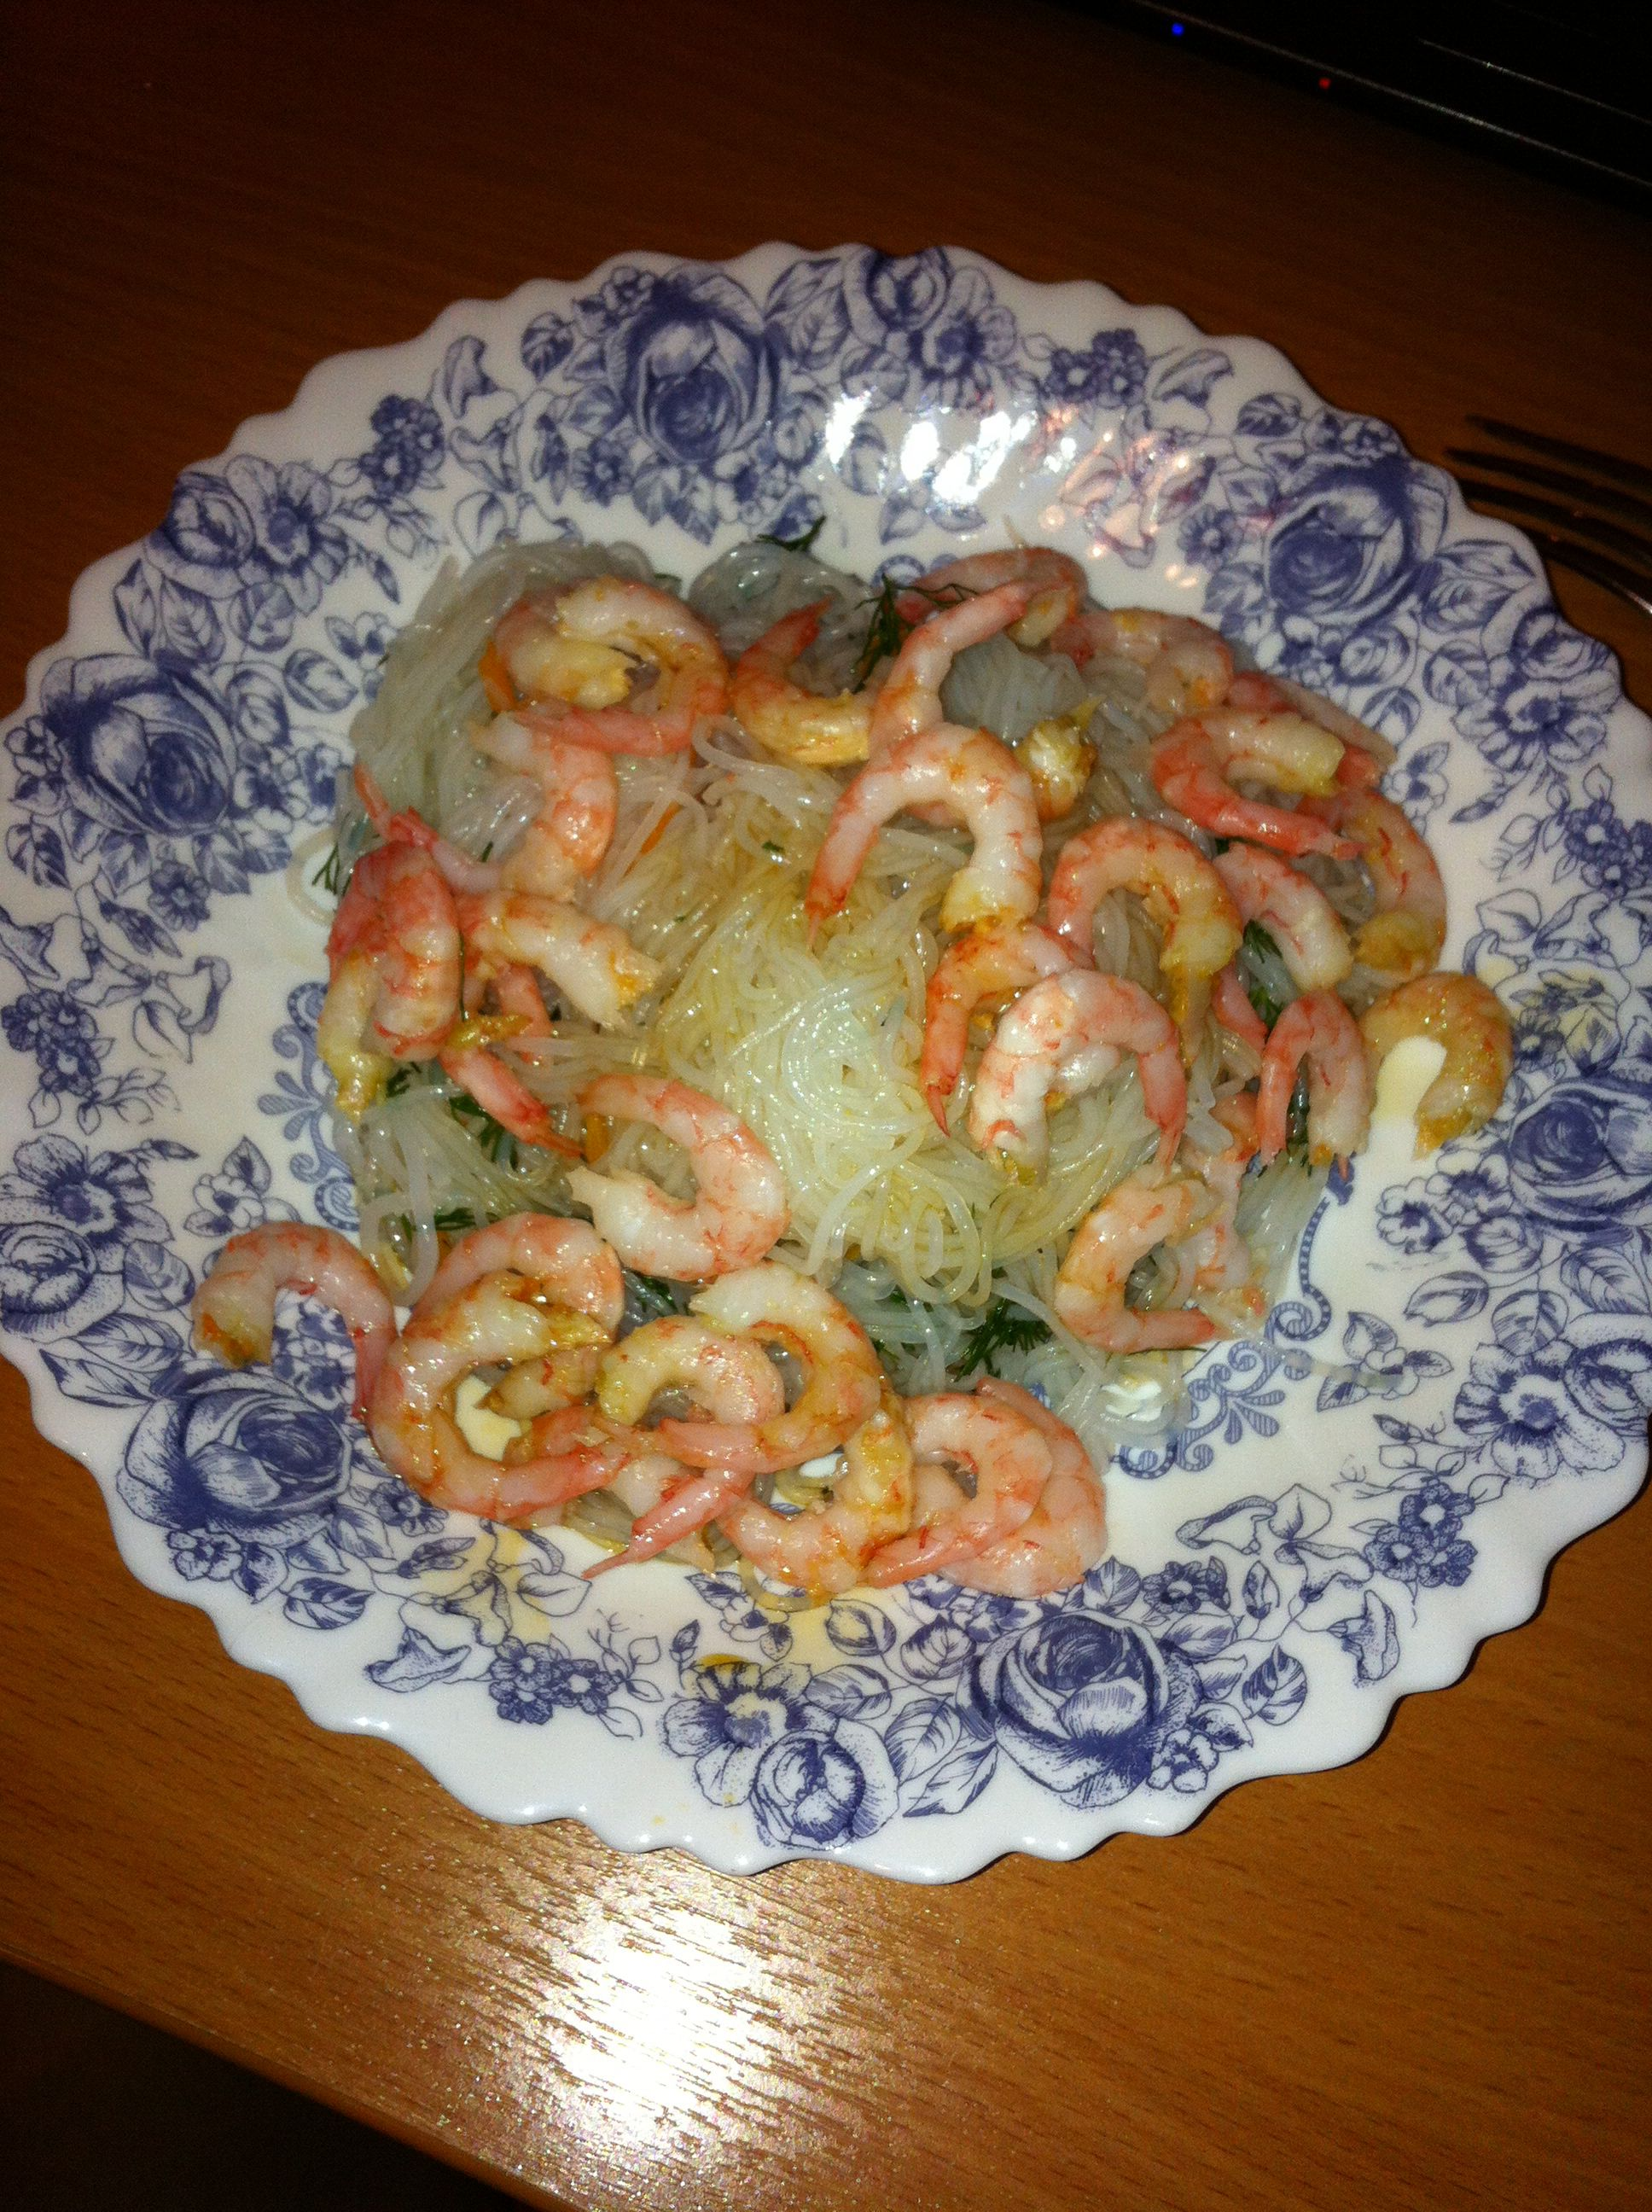 Rice noodles with shrimp